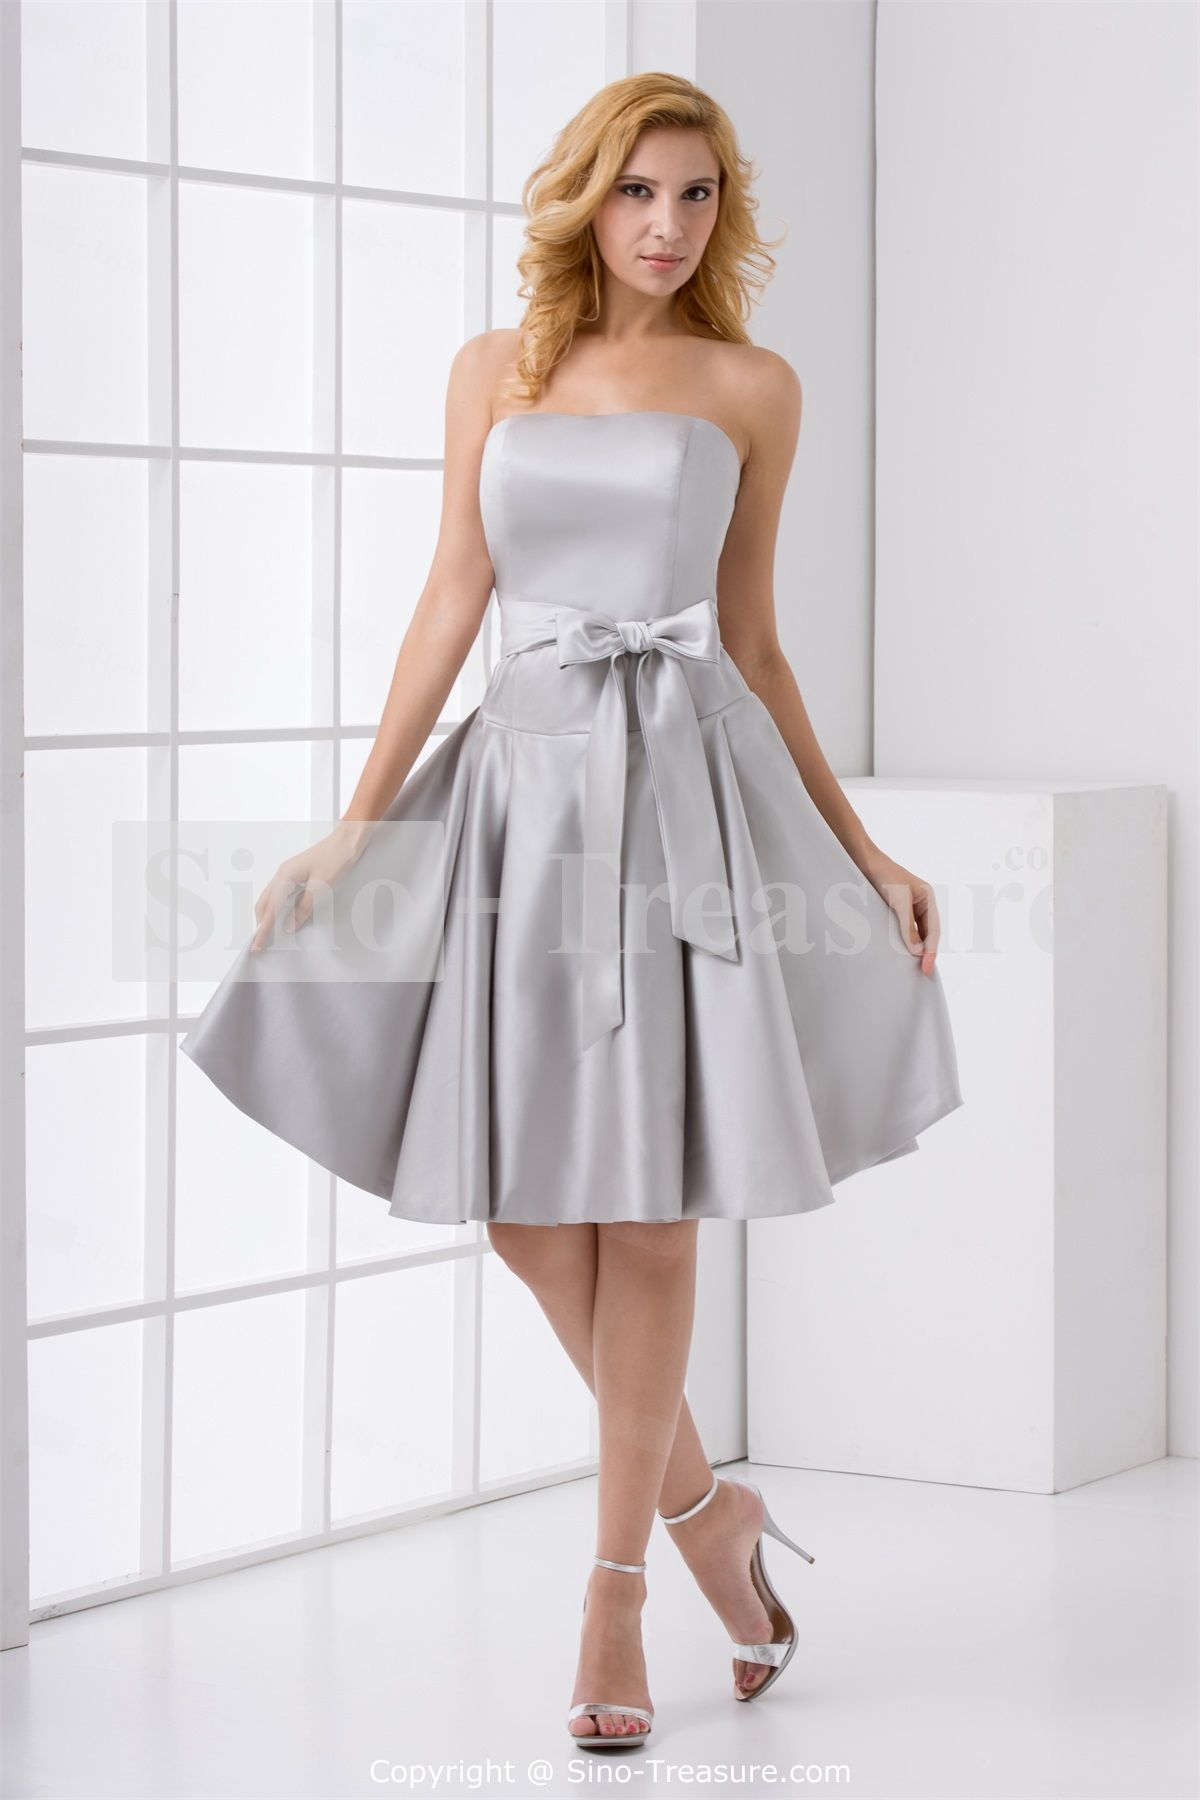 Silver bridesmaid gowns bridal gowns pinterest silver fine a line strapless knee length silver short bridesmaid dress with sashes ombrellifo Images